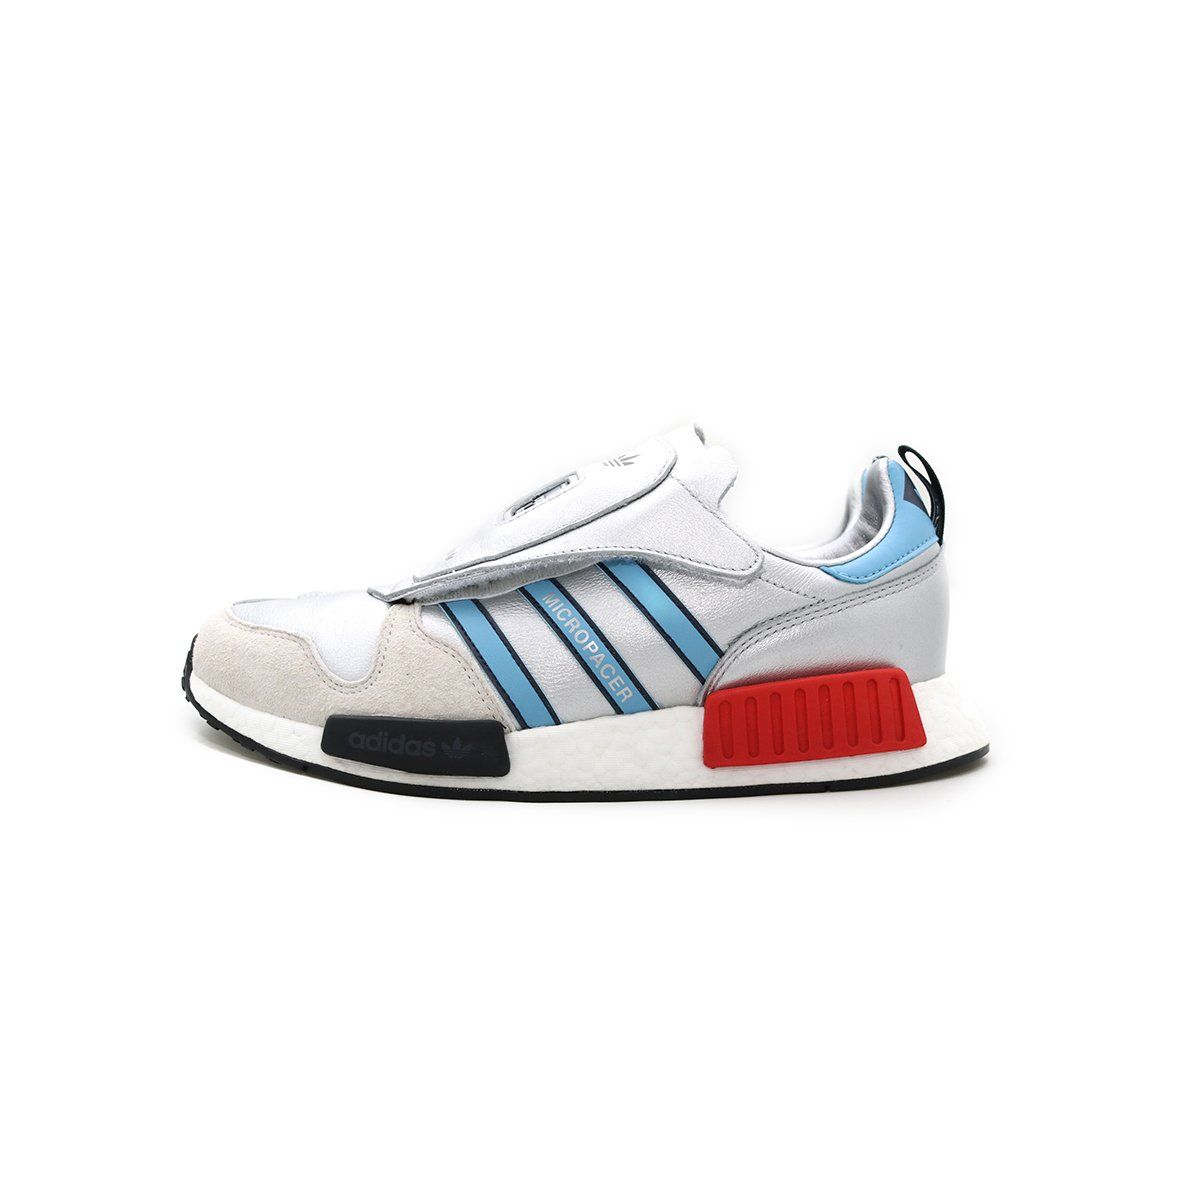 official photos 83c19 e7d0b Order adidas Micropacer NMD R1 | Buy Shoes Online